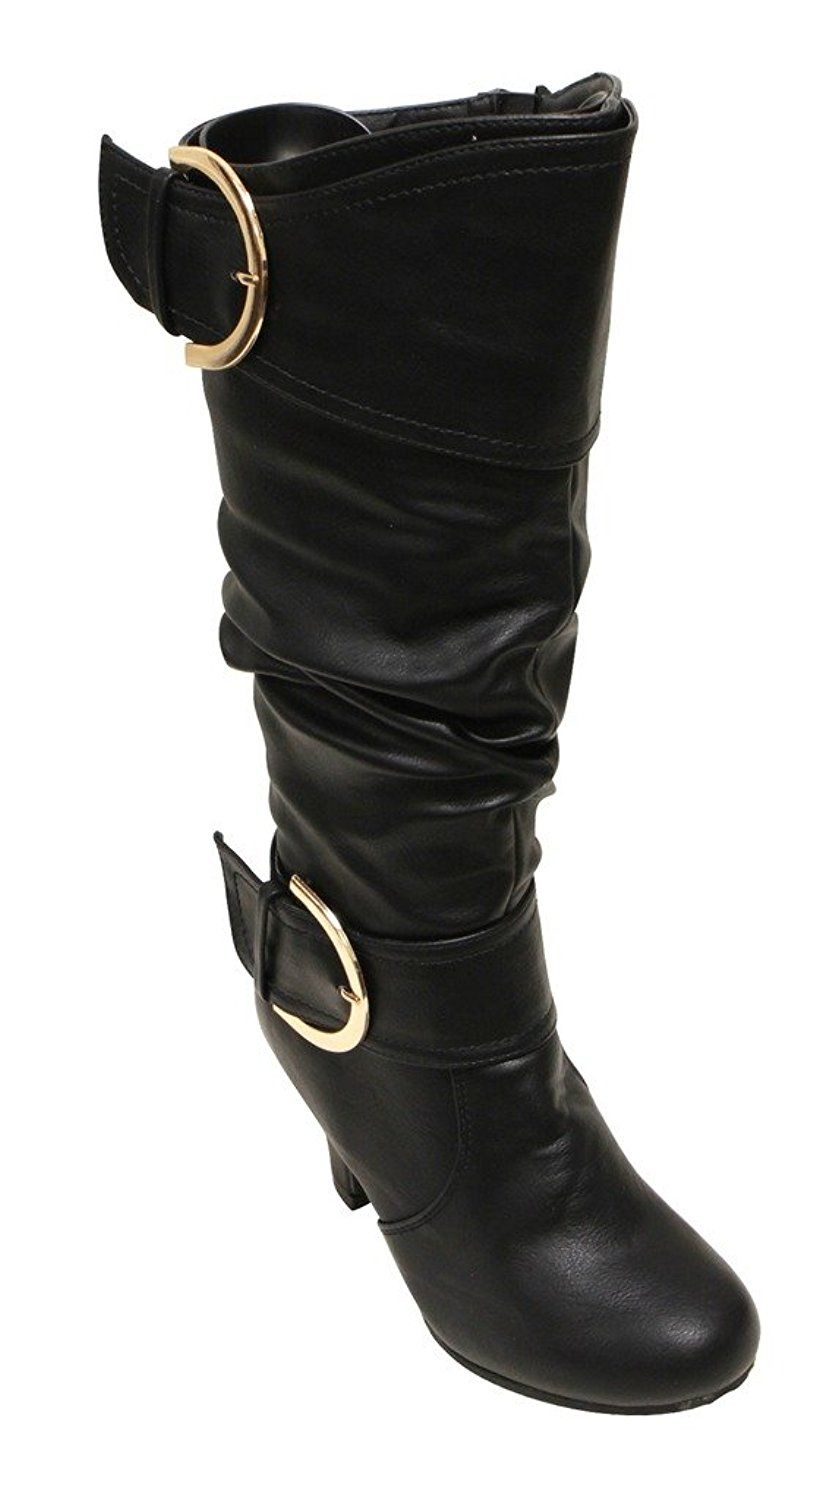 7f350728b7b Top Moda Aiden-3 Women s almond toe kitten heel buckle slouchy side zipper  mid-calf boots     You can find more details by visiting the image link.